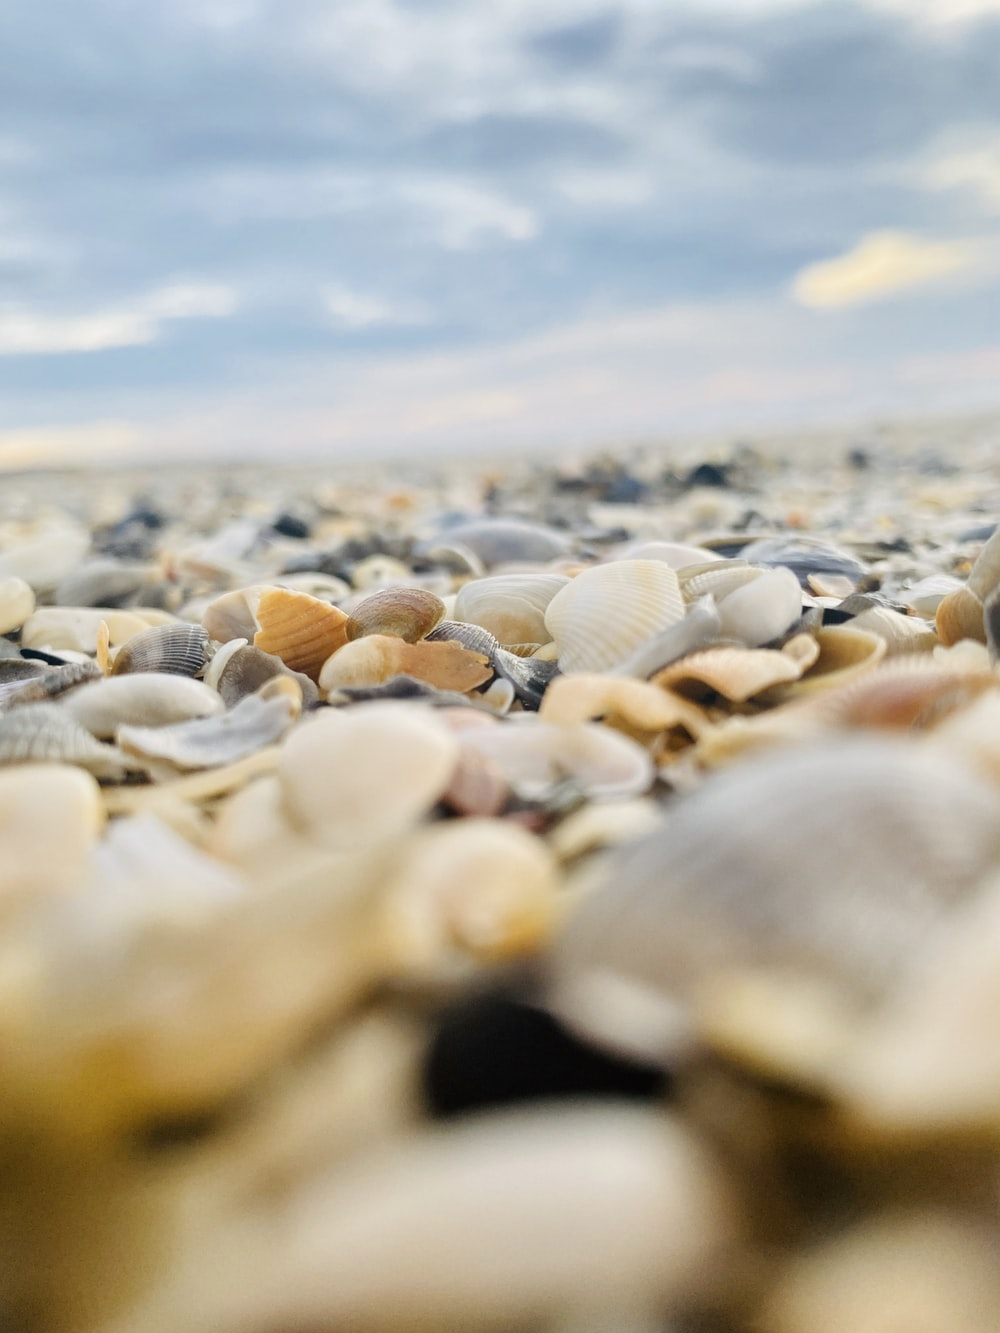 white and brown sea shells on shore during daytime